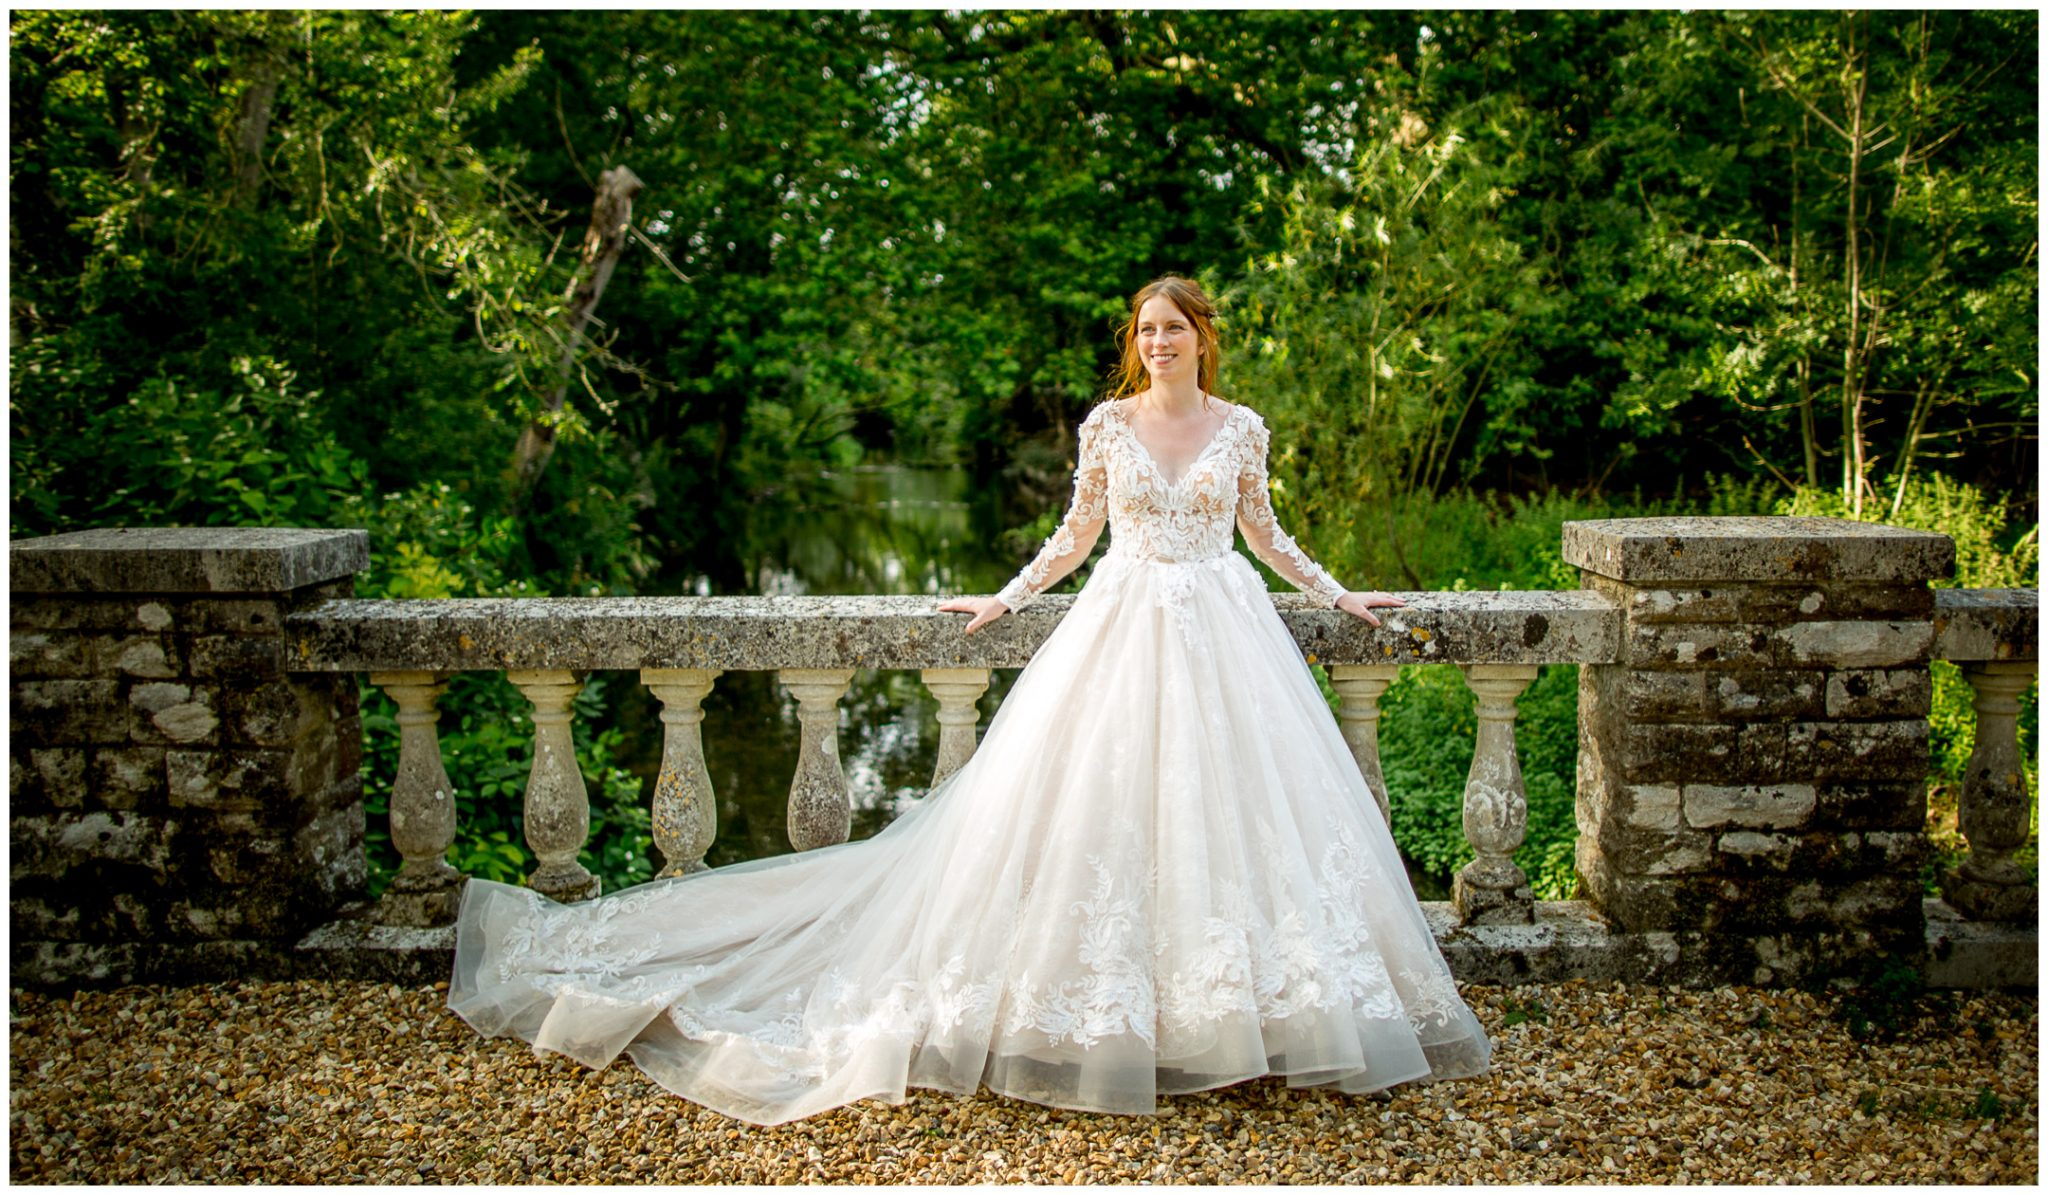 Bride portrait on bridge with river behind